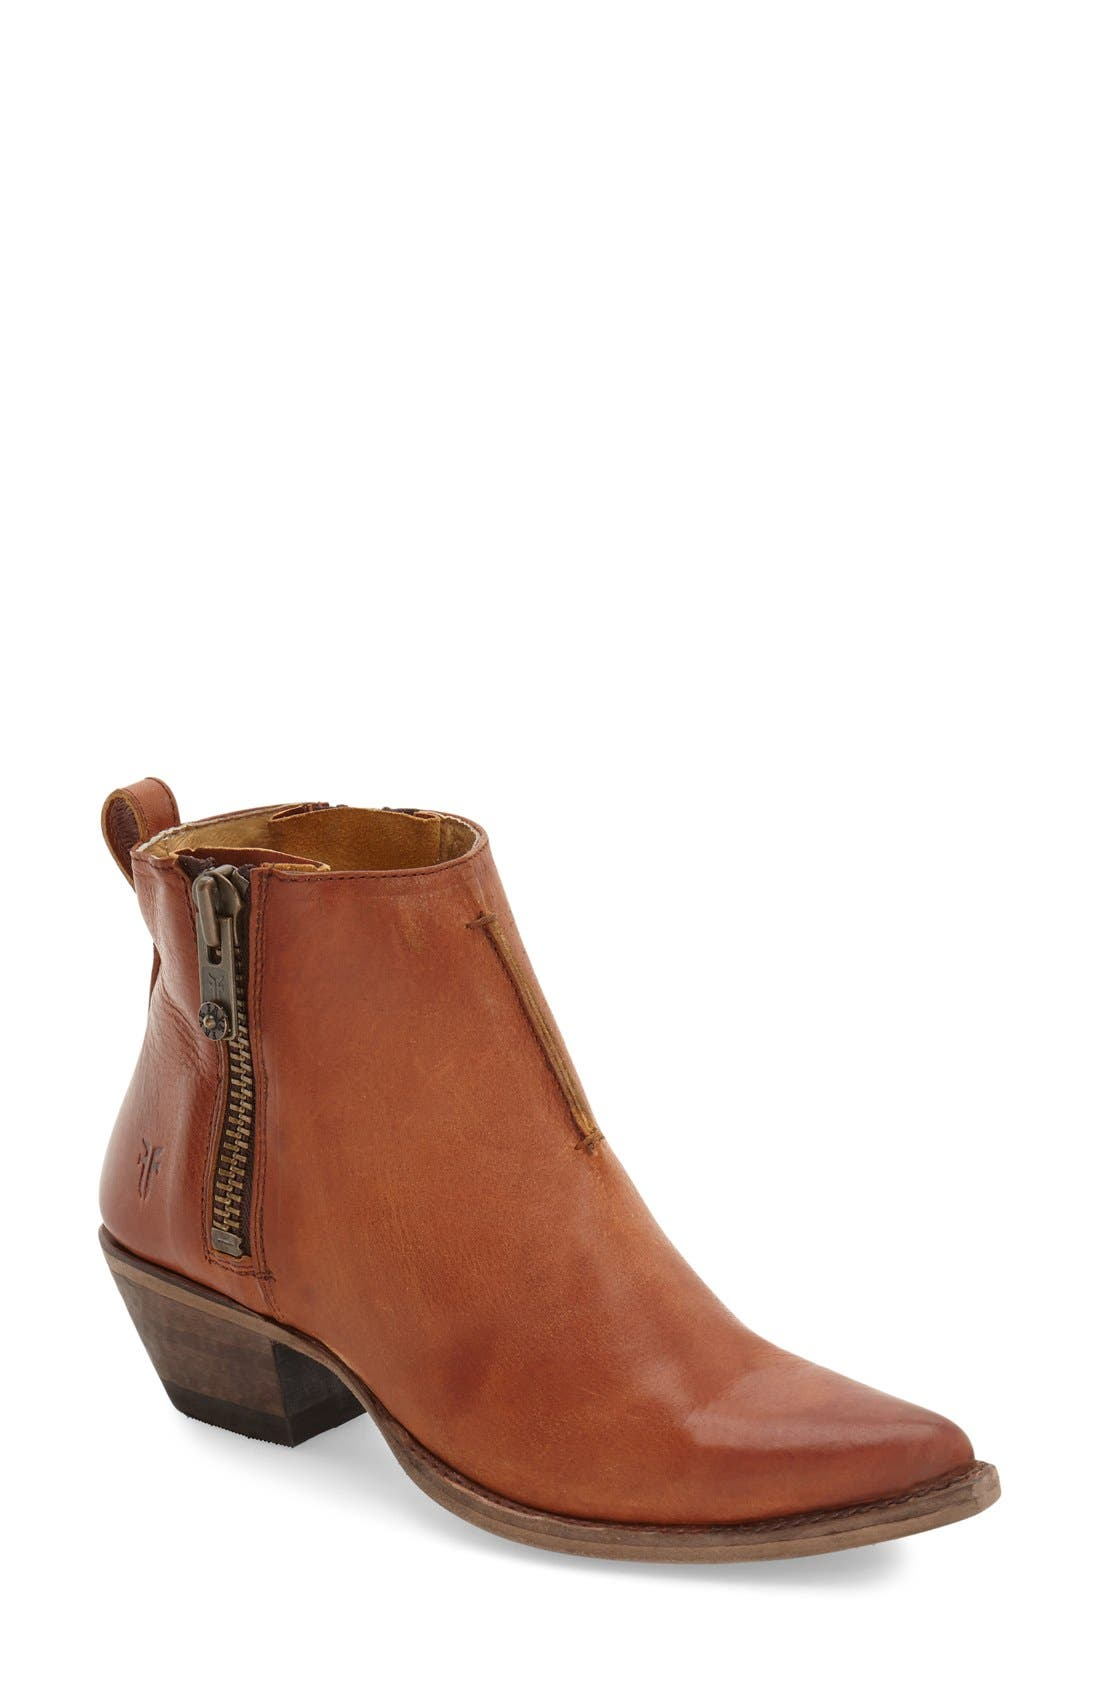 'Sacha' Washed Leather Ankle Boot,                             Main thumbnail 3, color,